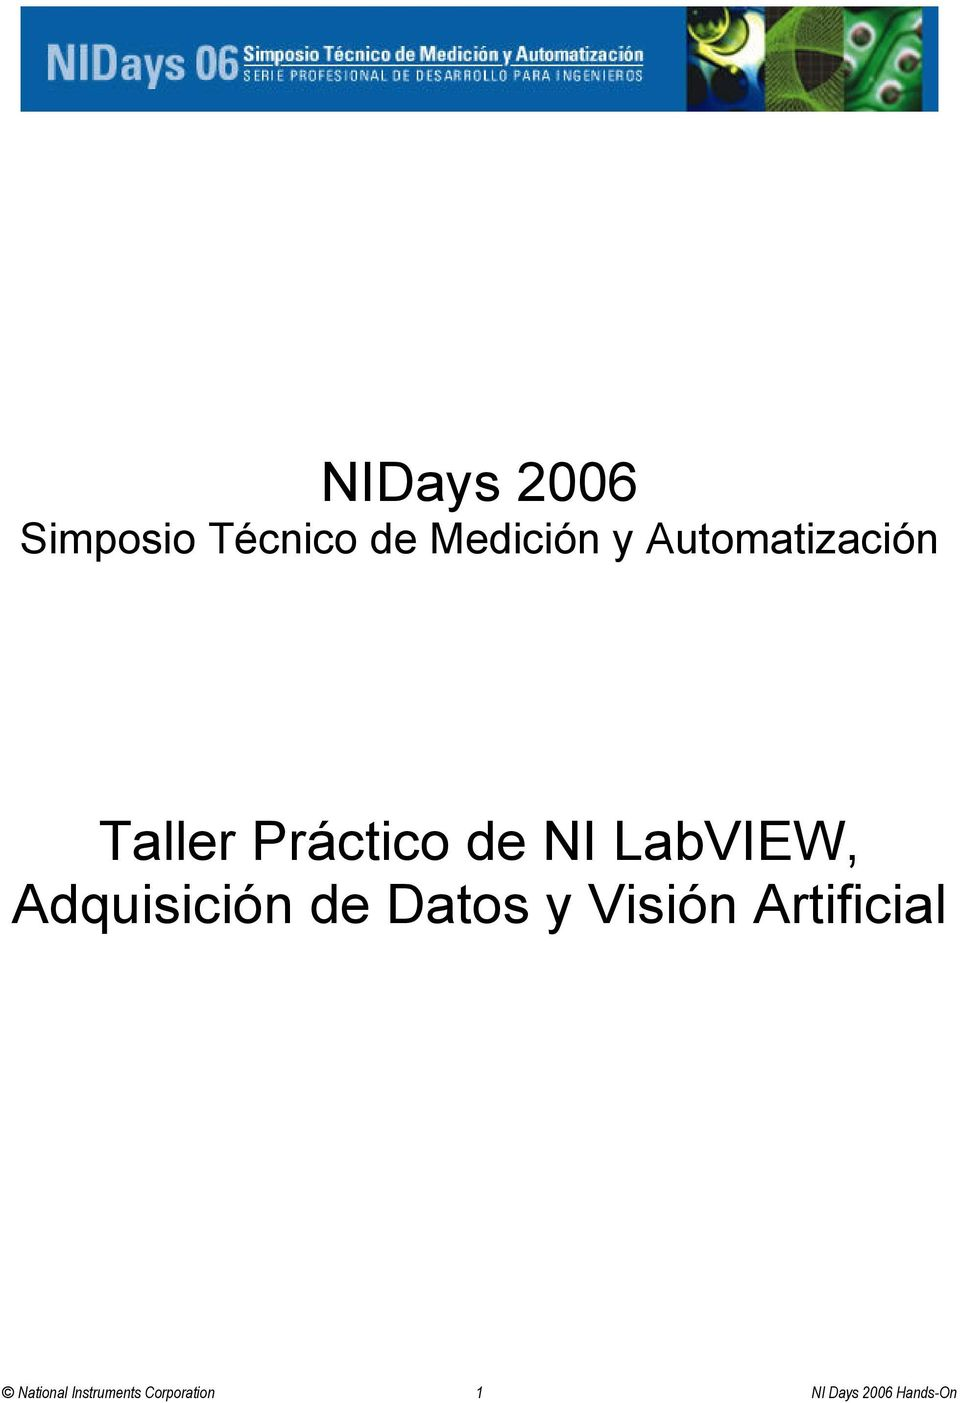 Adquisición de Datos y Visión Artificial